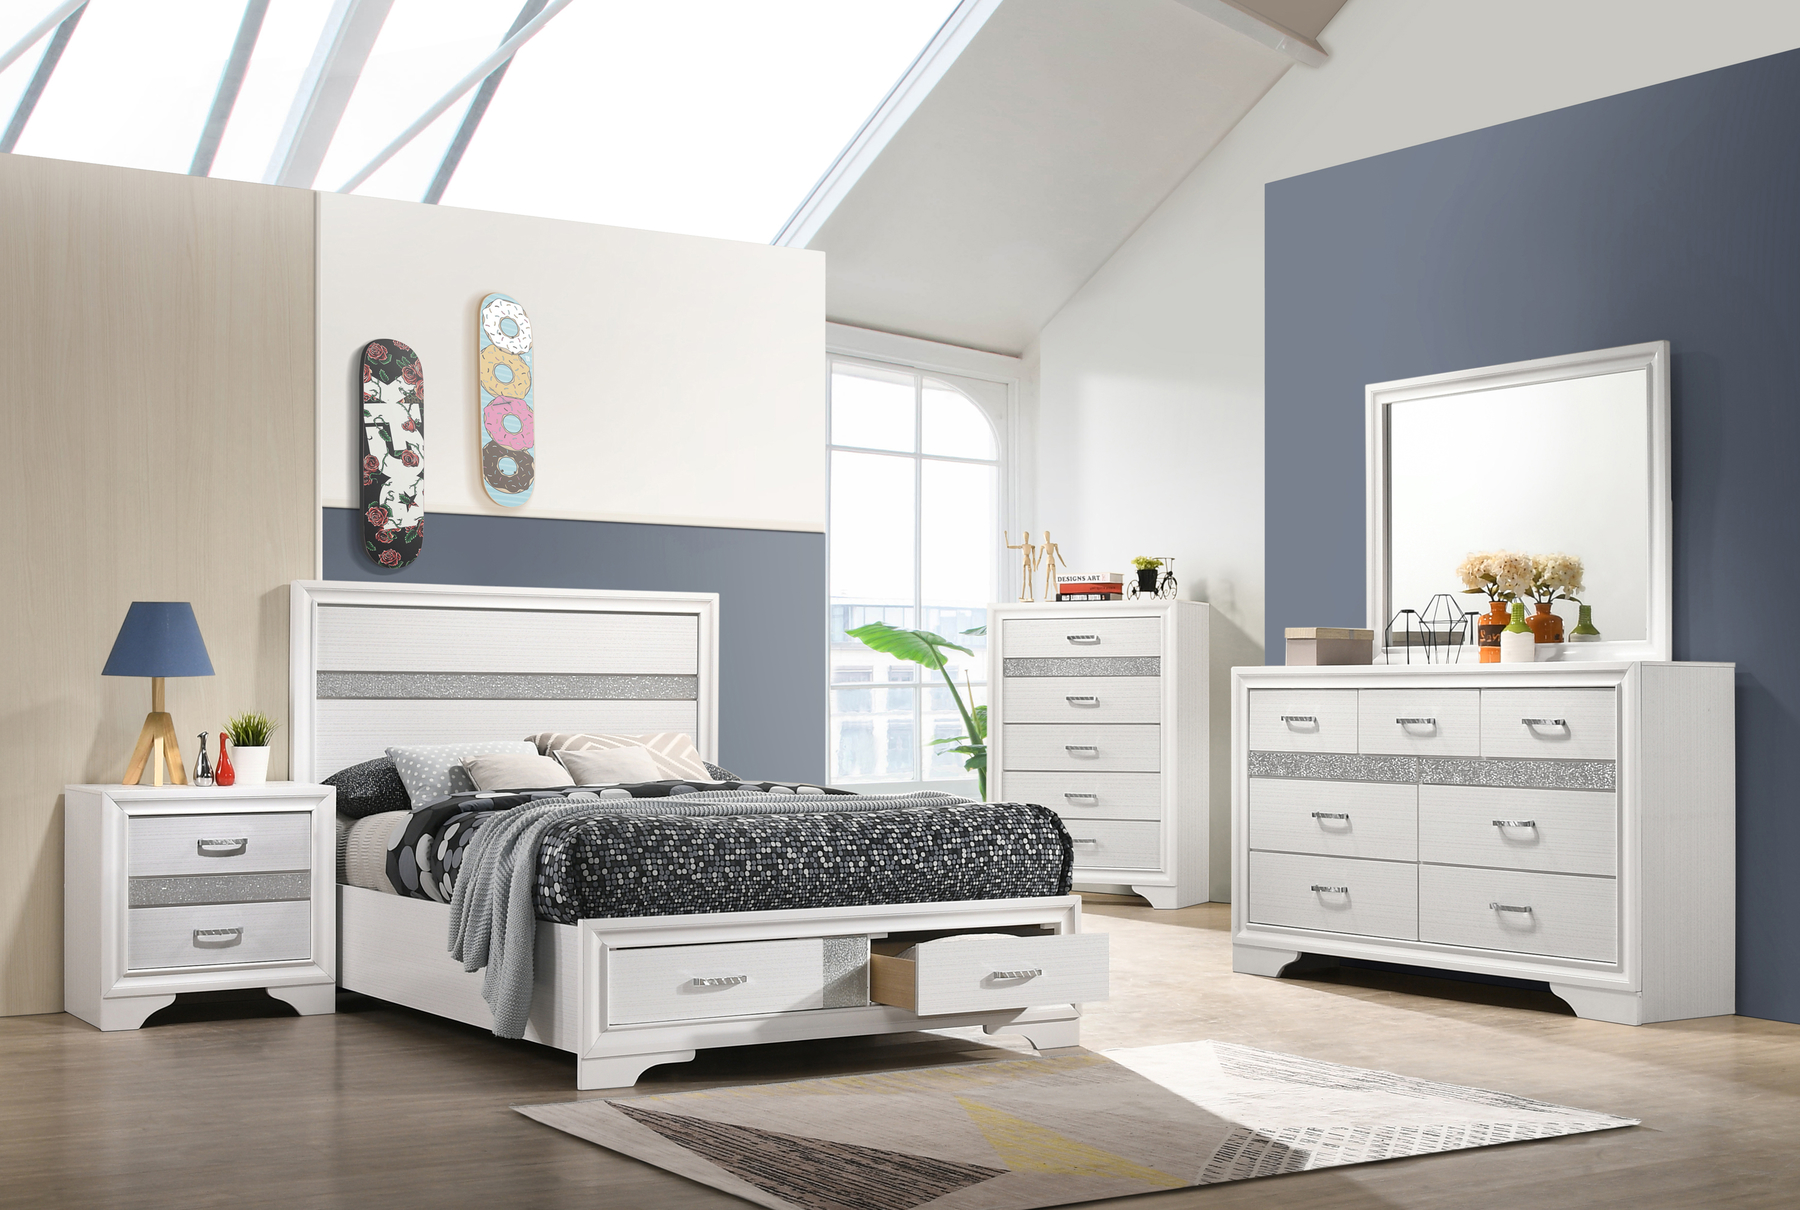 Image result for bedroom set with storage full